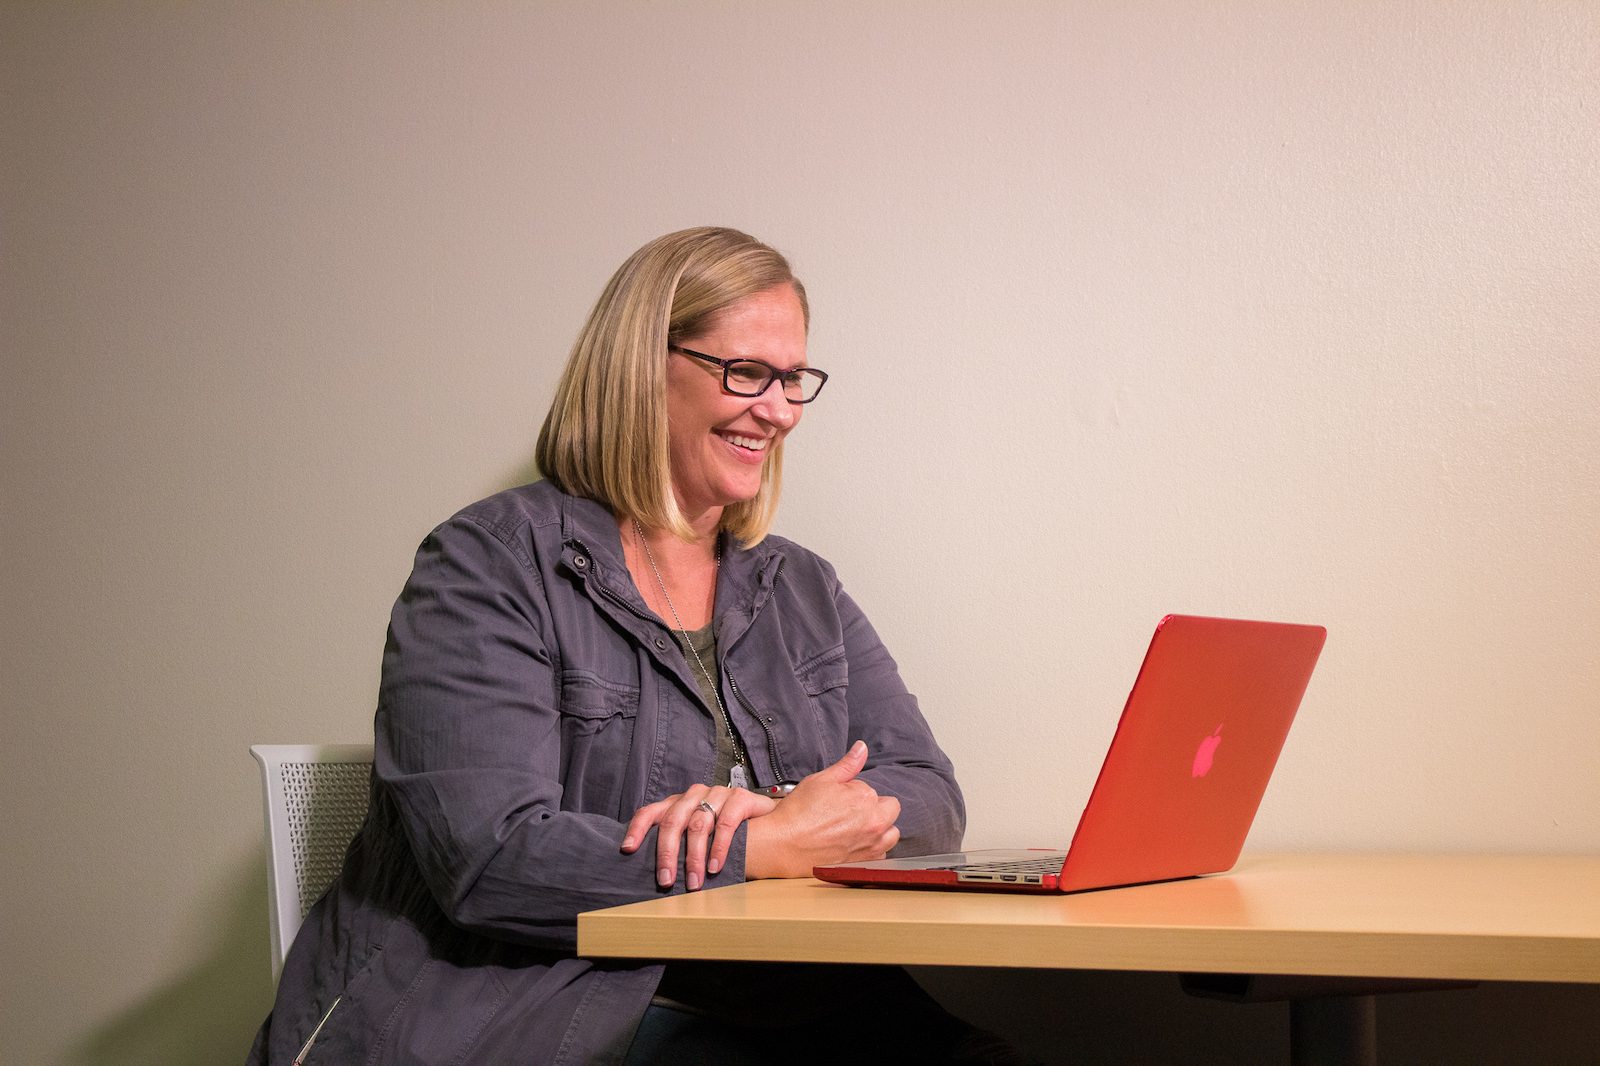 Alyssa Zemke, a student in the Master of Science in Respiratory Care program, works on her laptop